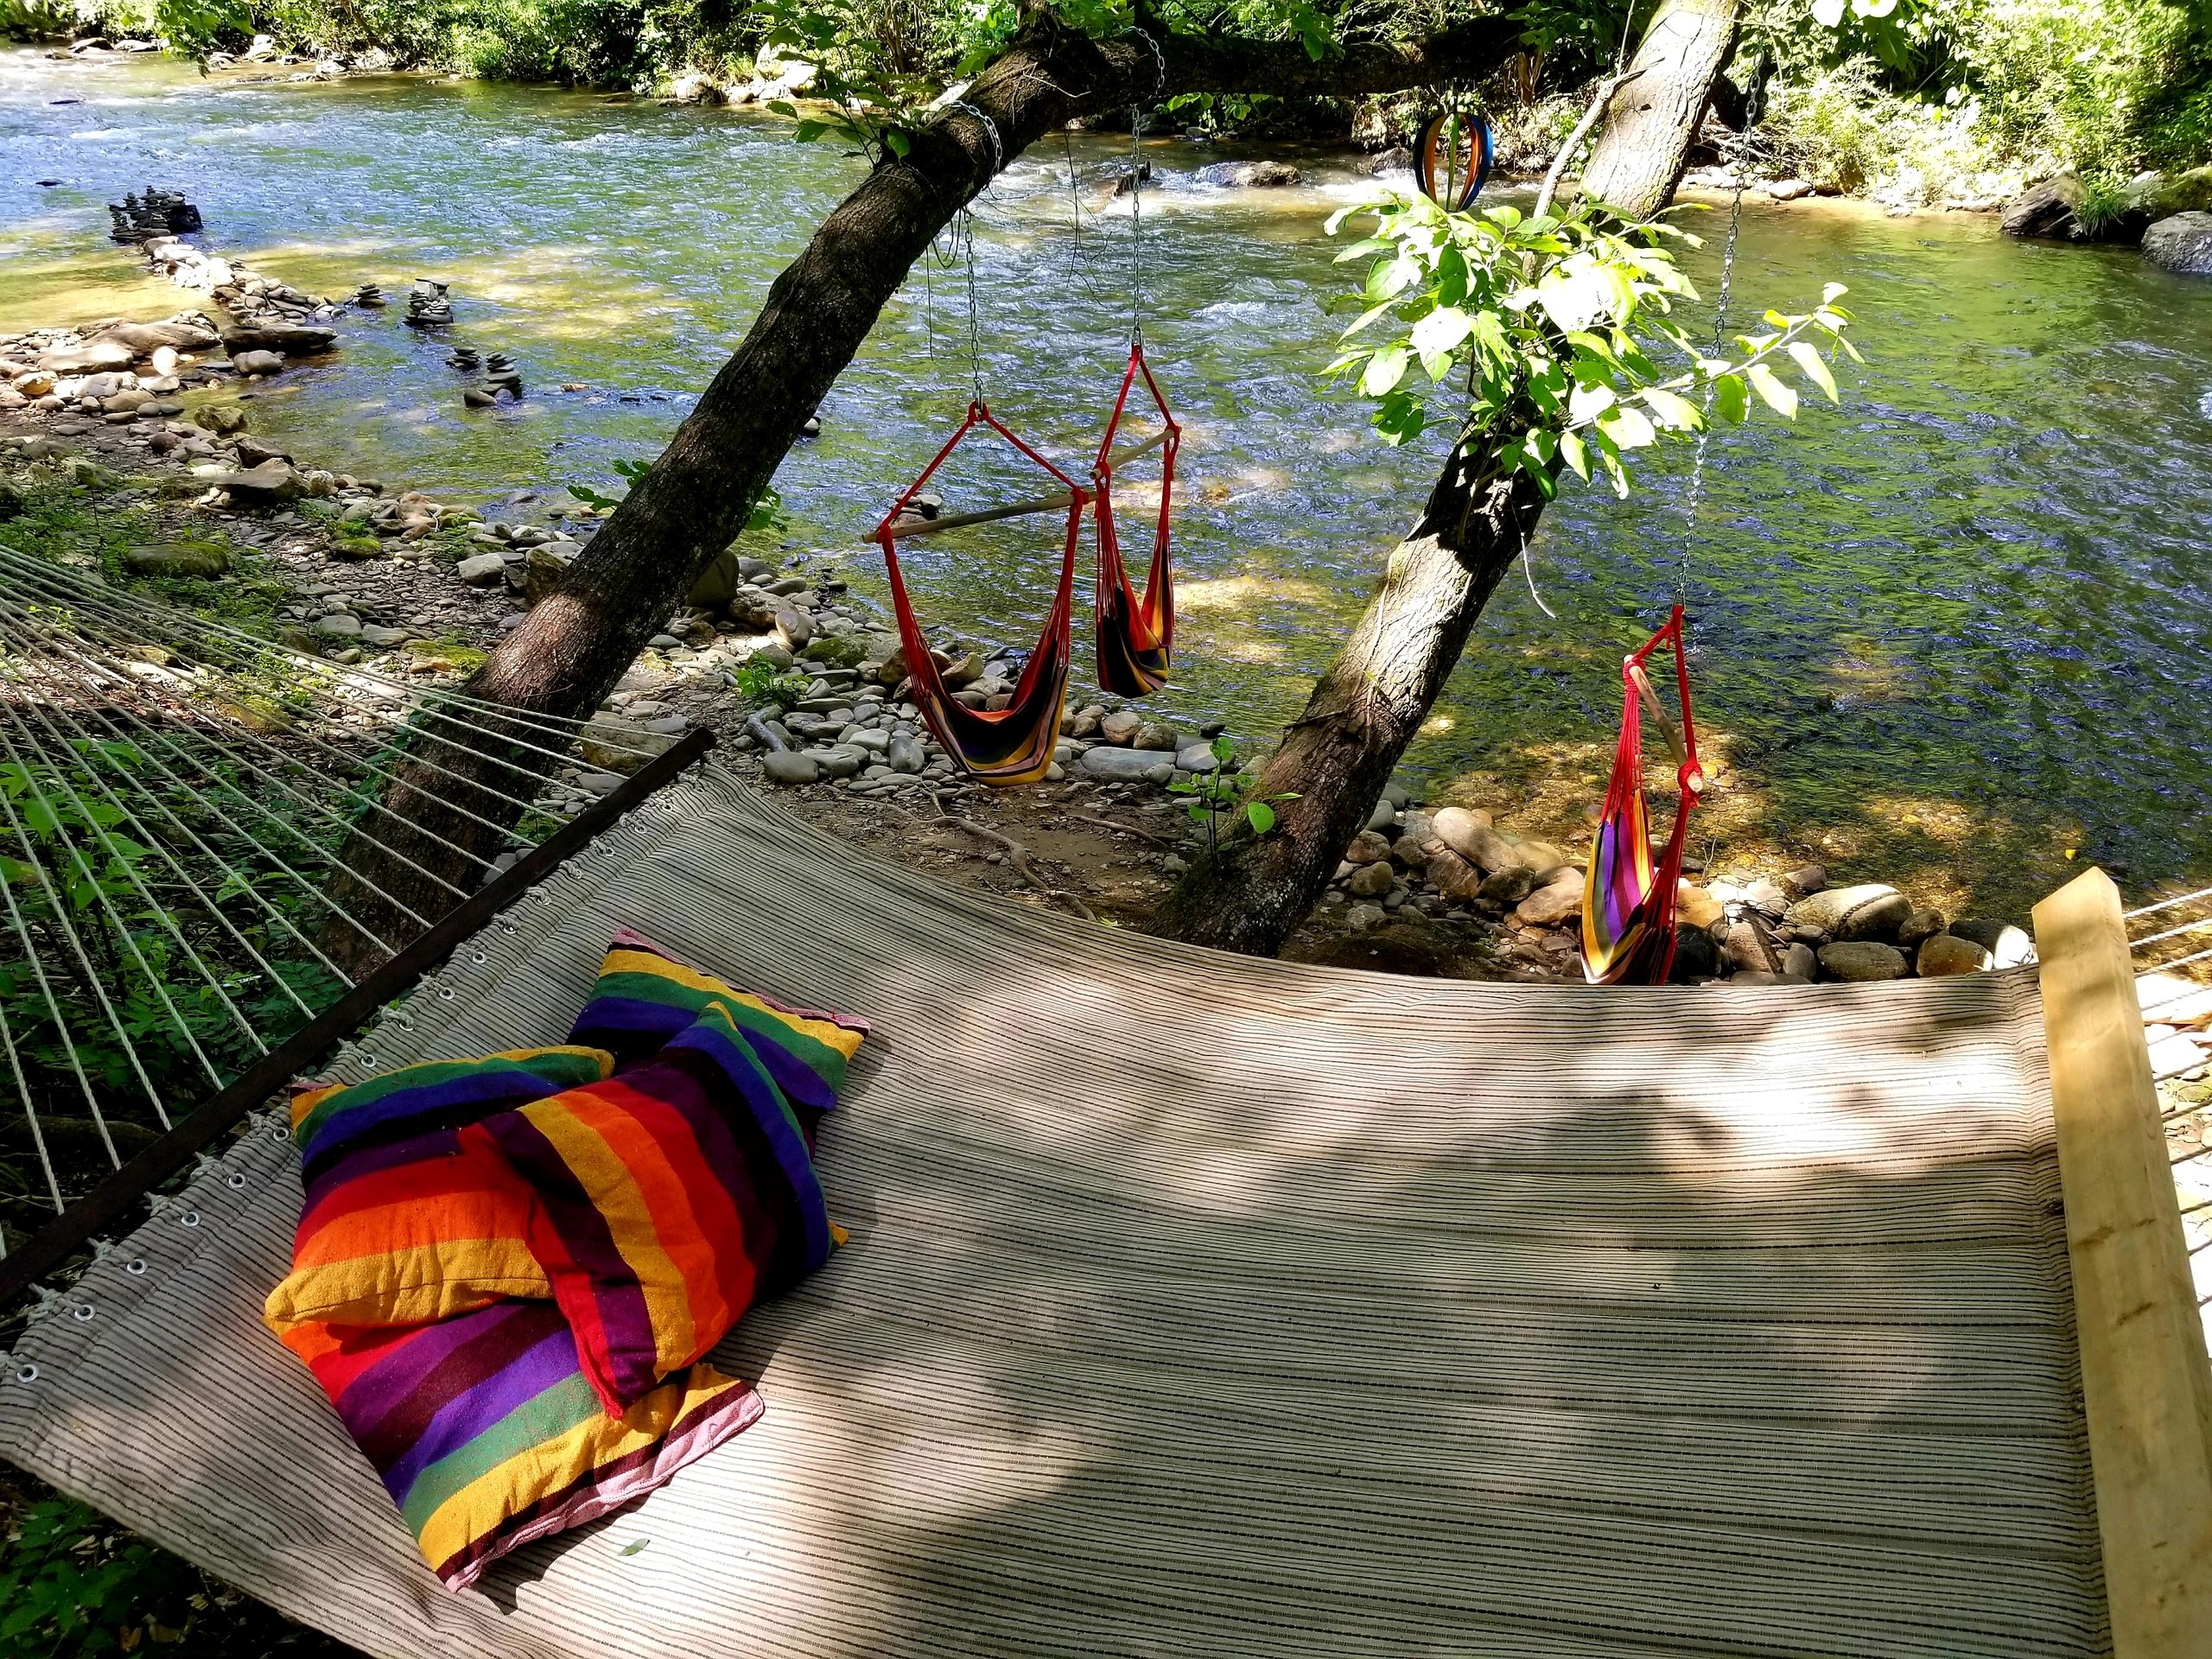 Bear Creek Lodge and Cabins in Helen Ga invites you to relax by the river.